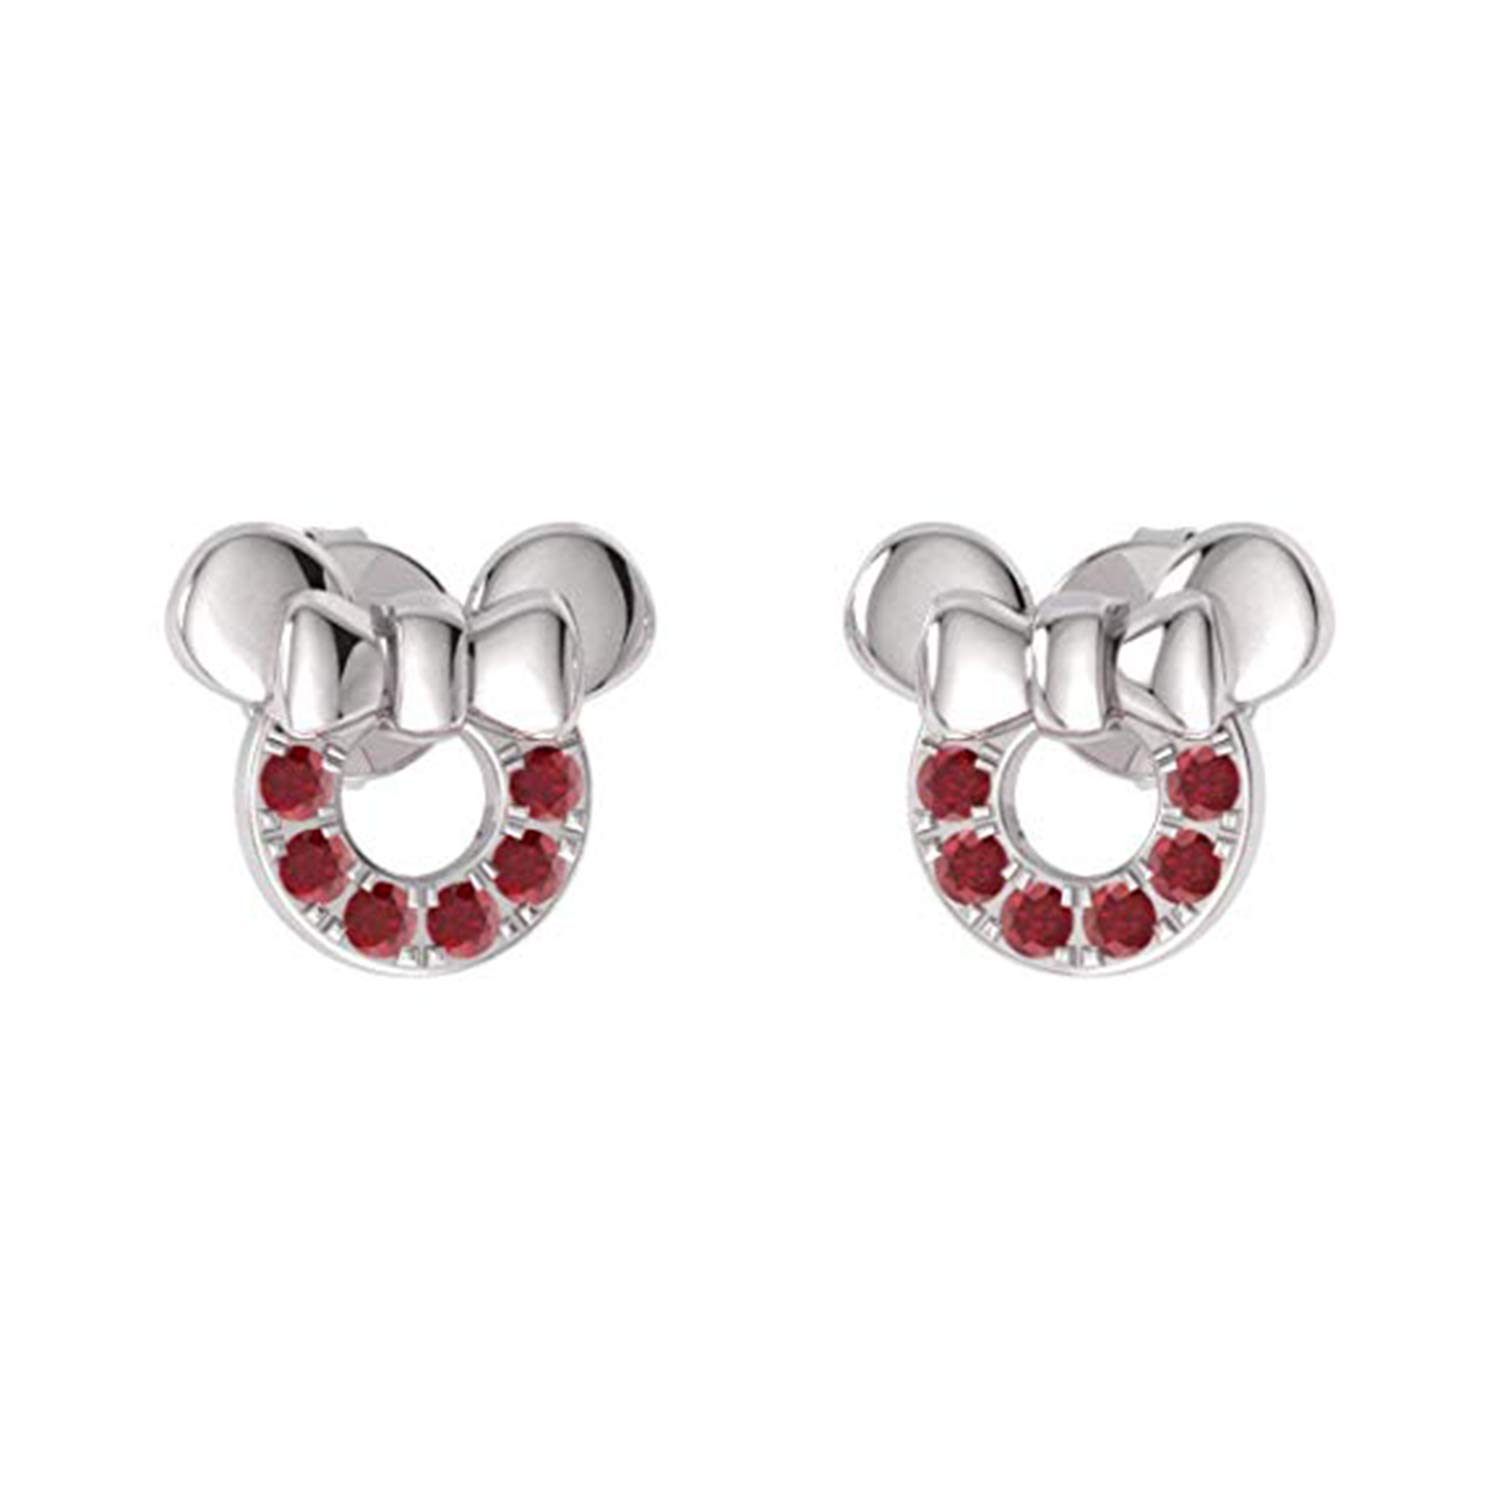 Disney Micky Mouse 14K White Gold Plated Simulated Diamond Stud Earrings For Womens Girls Jewellery